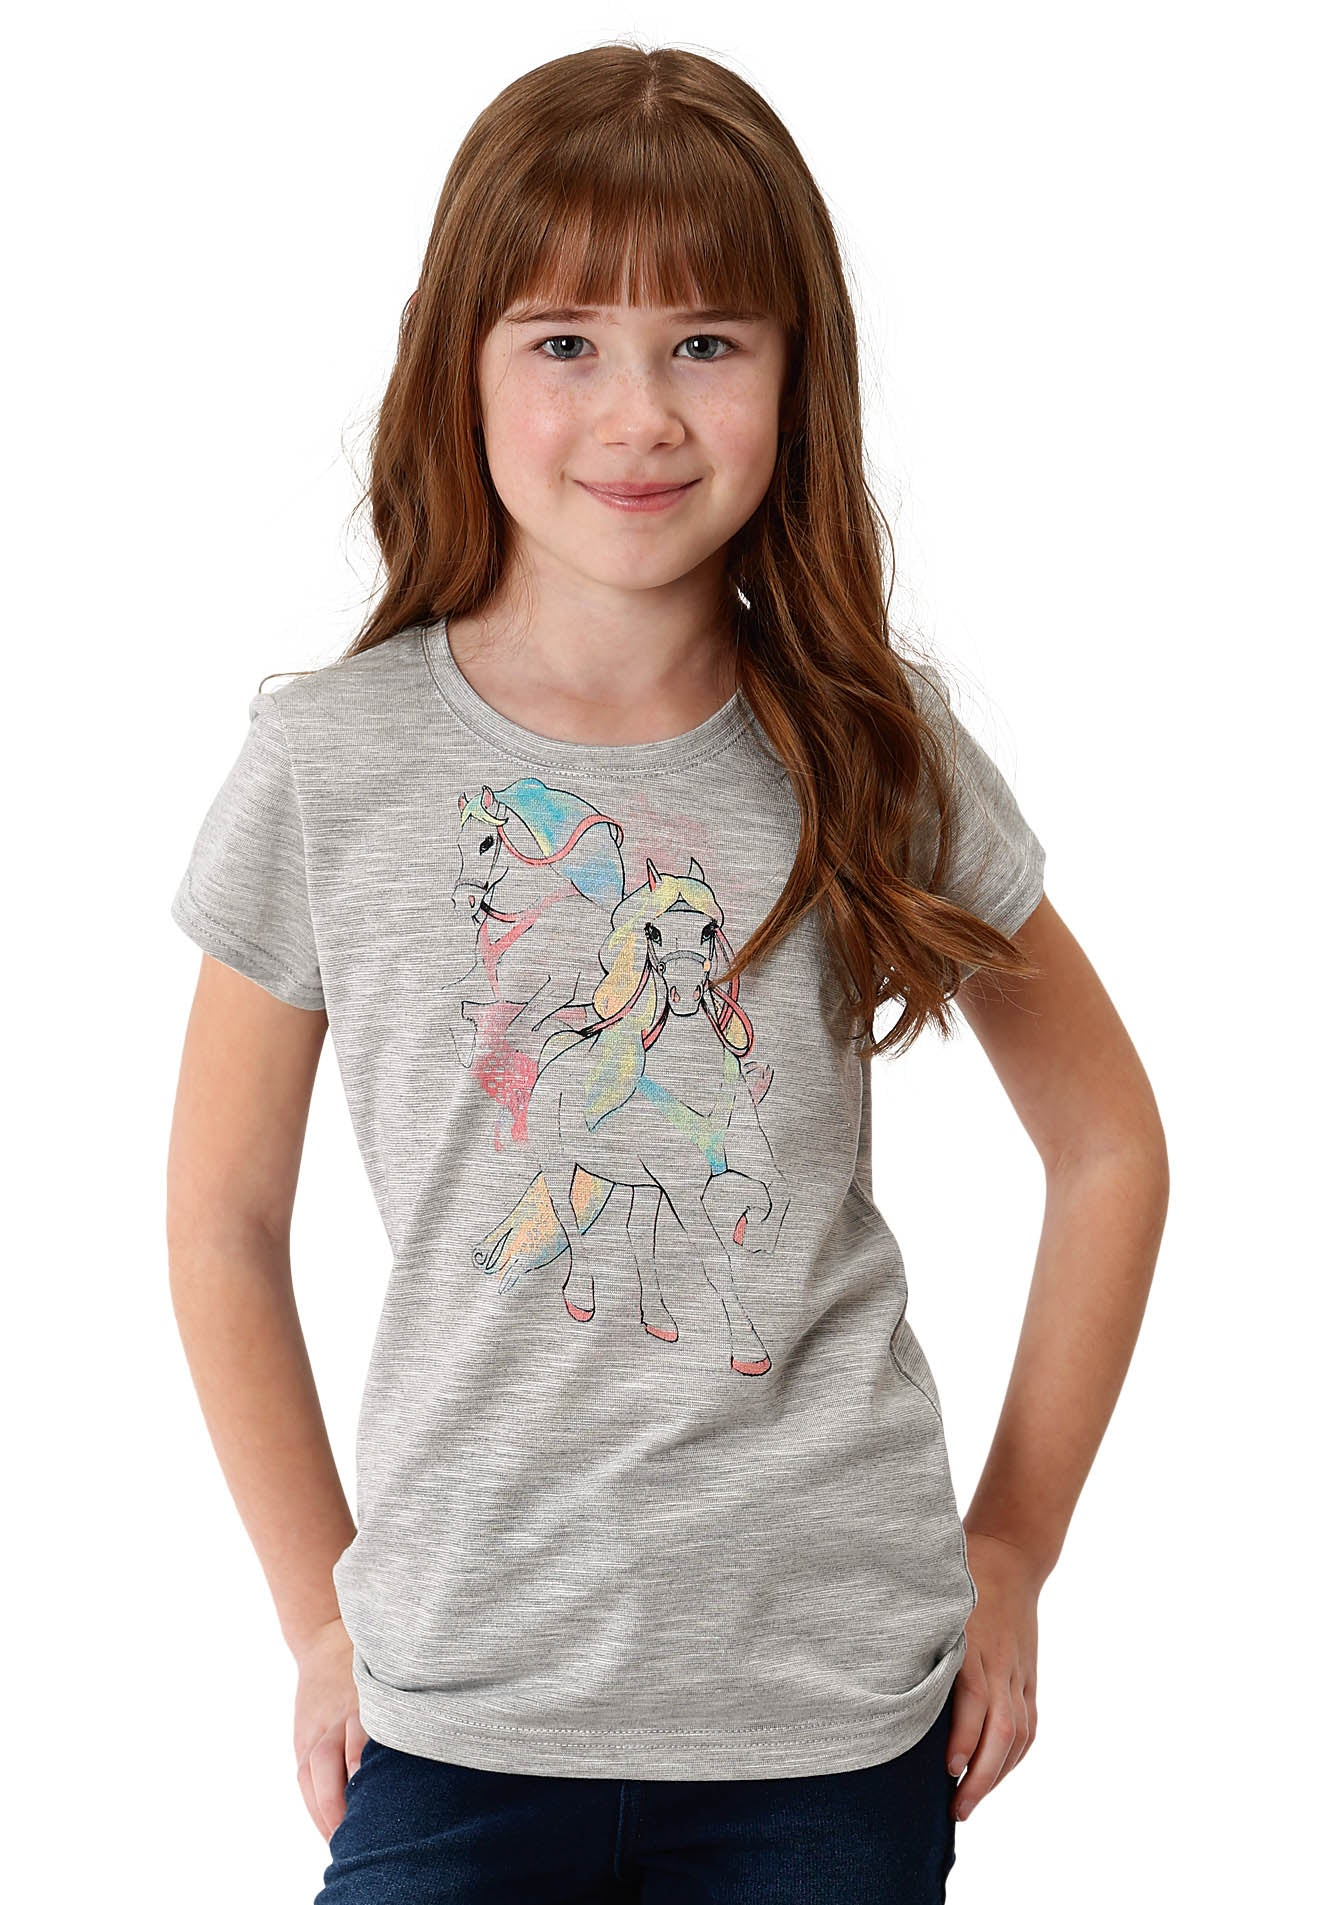 FIVE STAR GIRLS GREY 0489 GIRLS SS CREW NECK TEE SEASON 3 GROUP 1